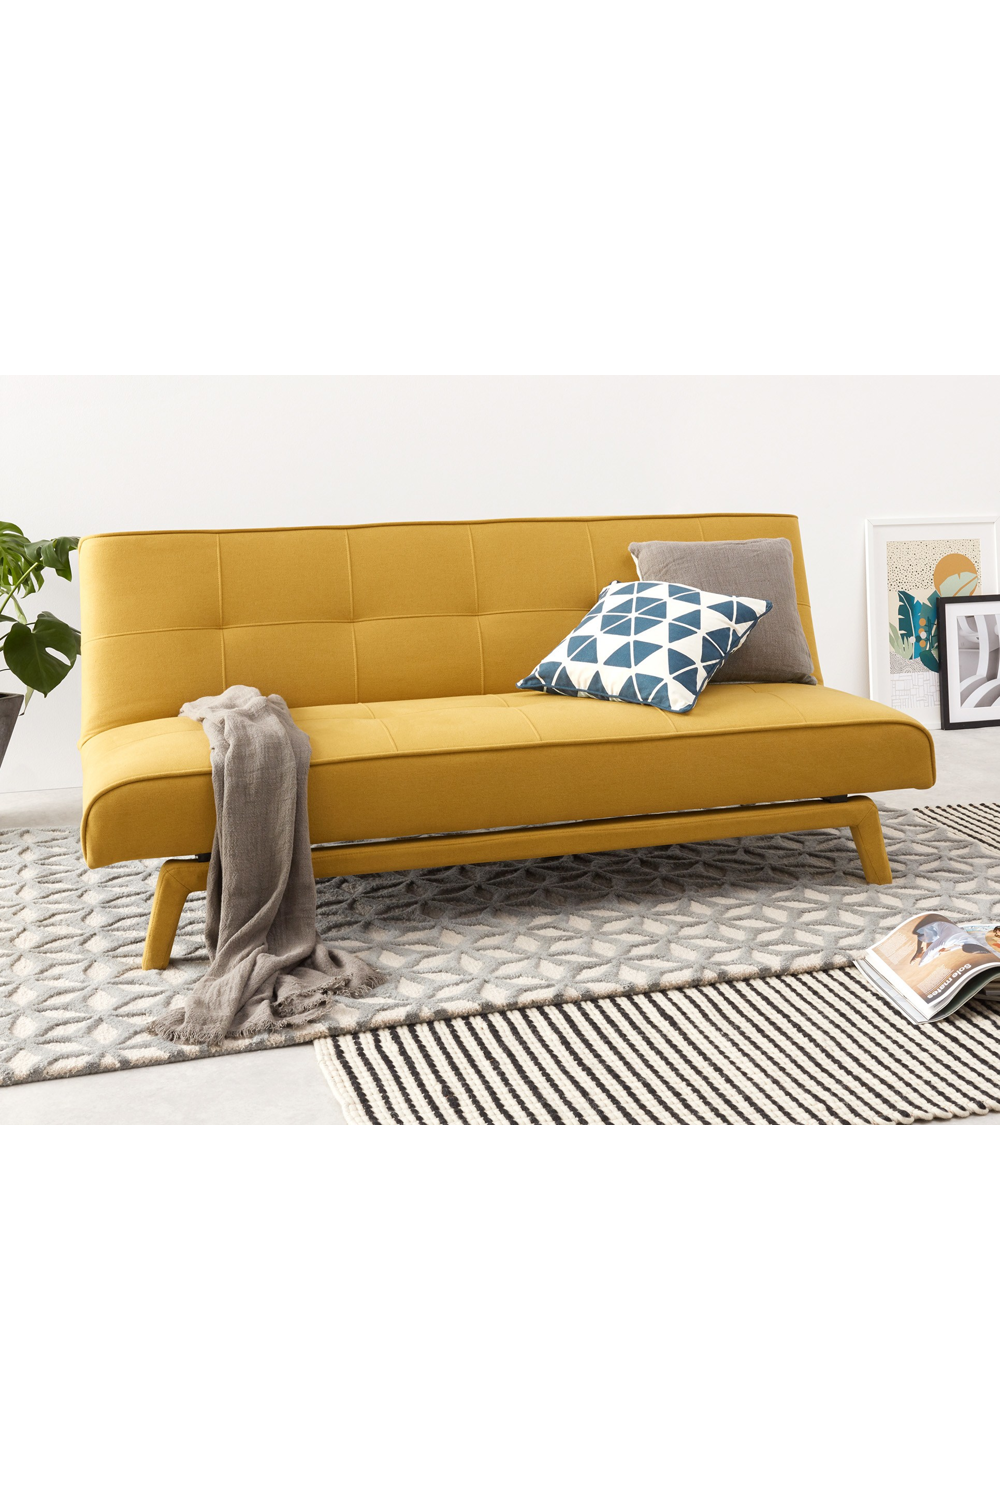 Yoko Schlafsofa Buttergelb Sofa Yellow Sofa Sofa Bed